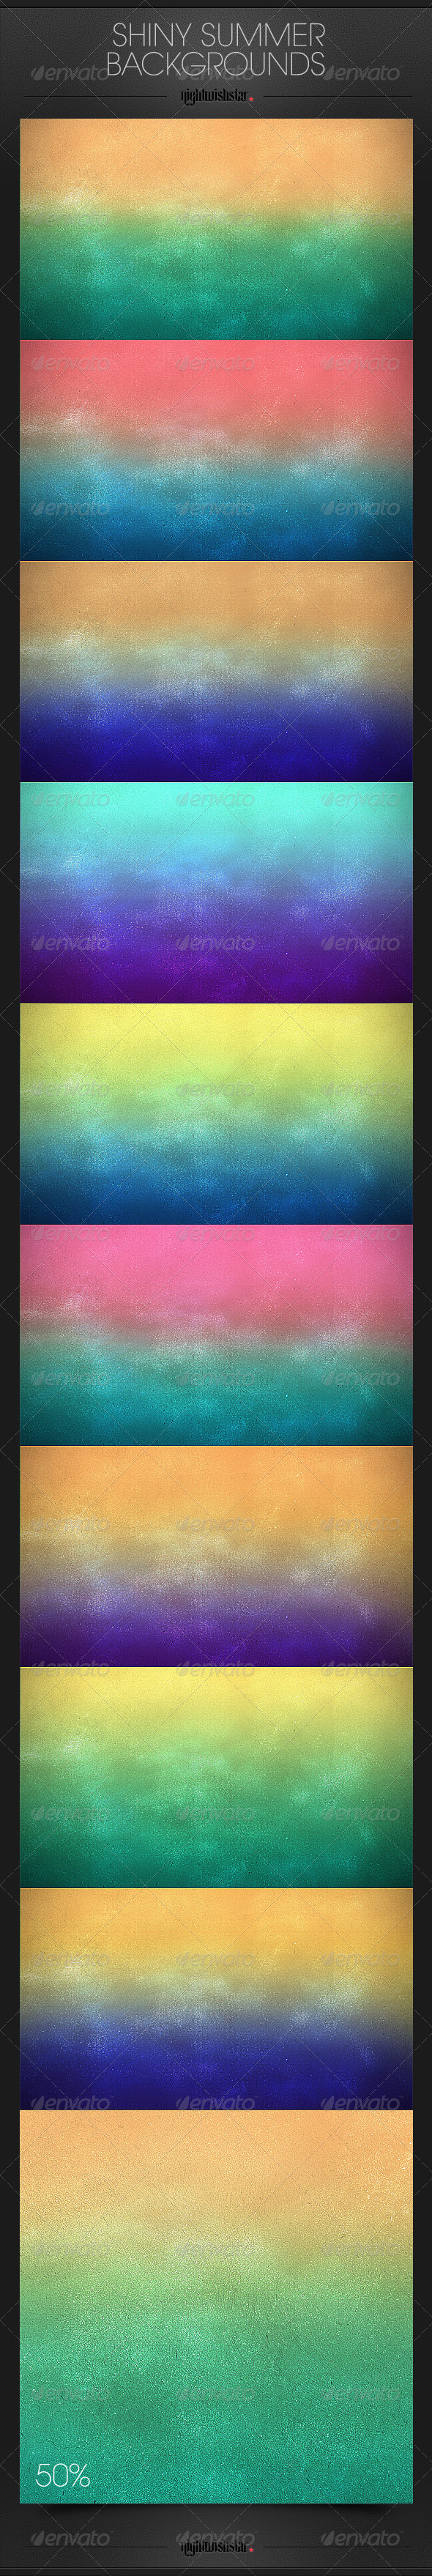 GraphicRiver Shiny Summer Backgrounds 6543444